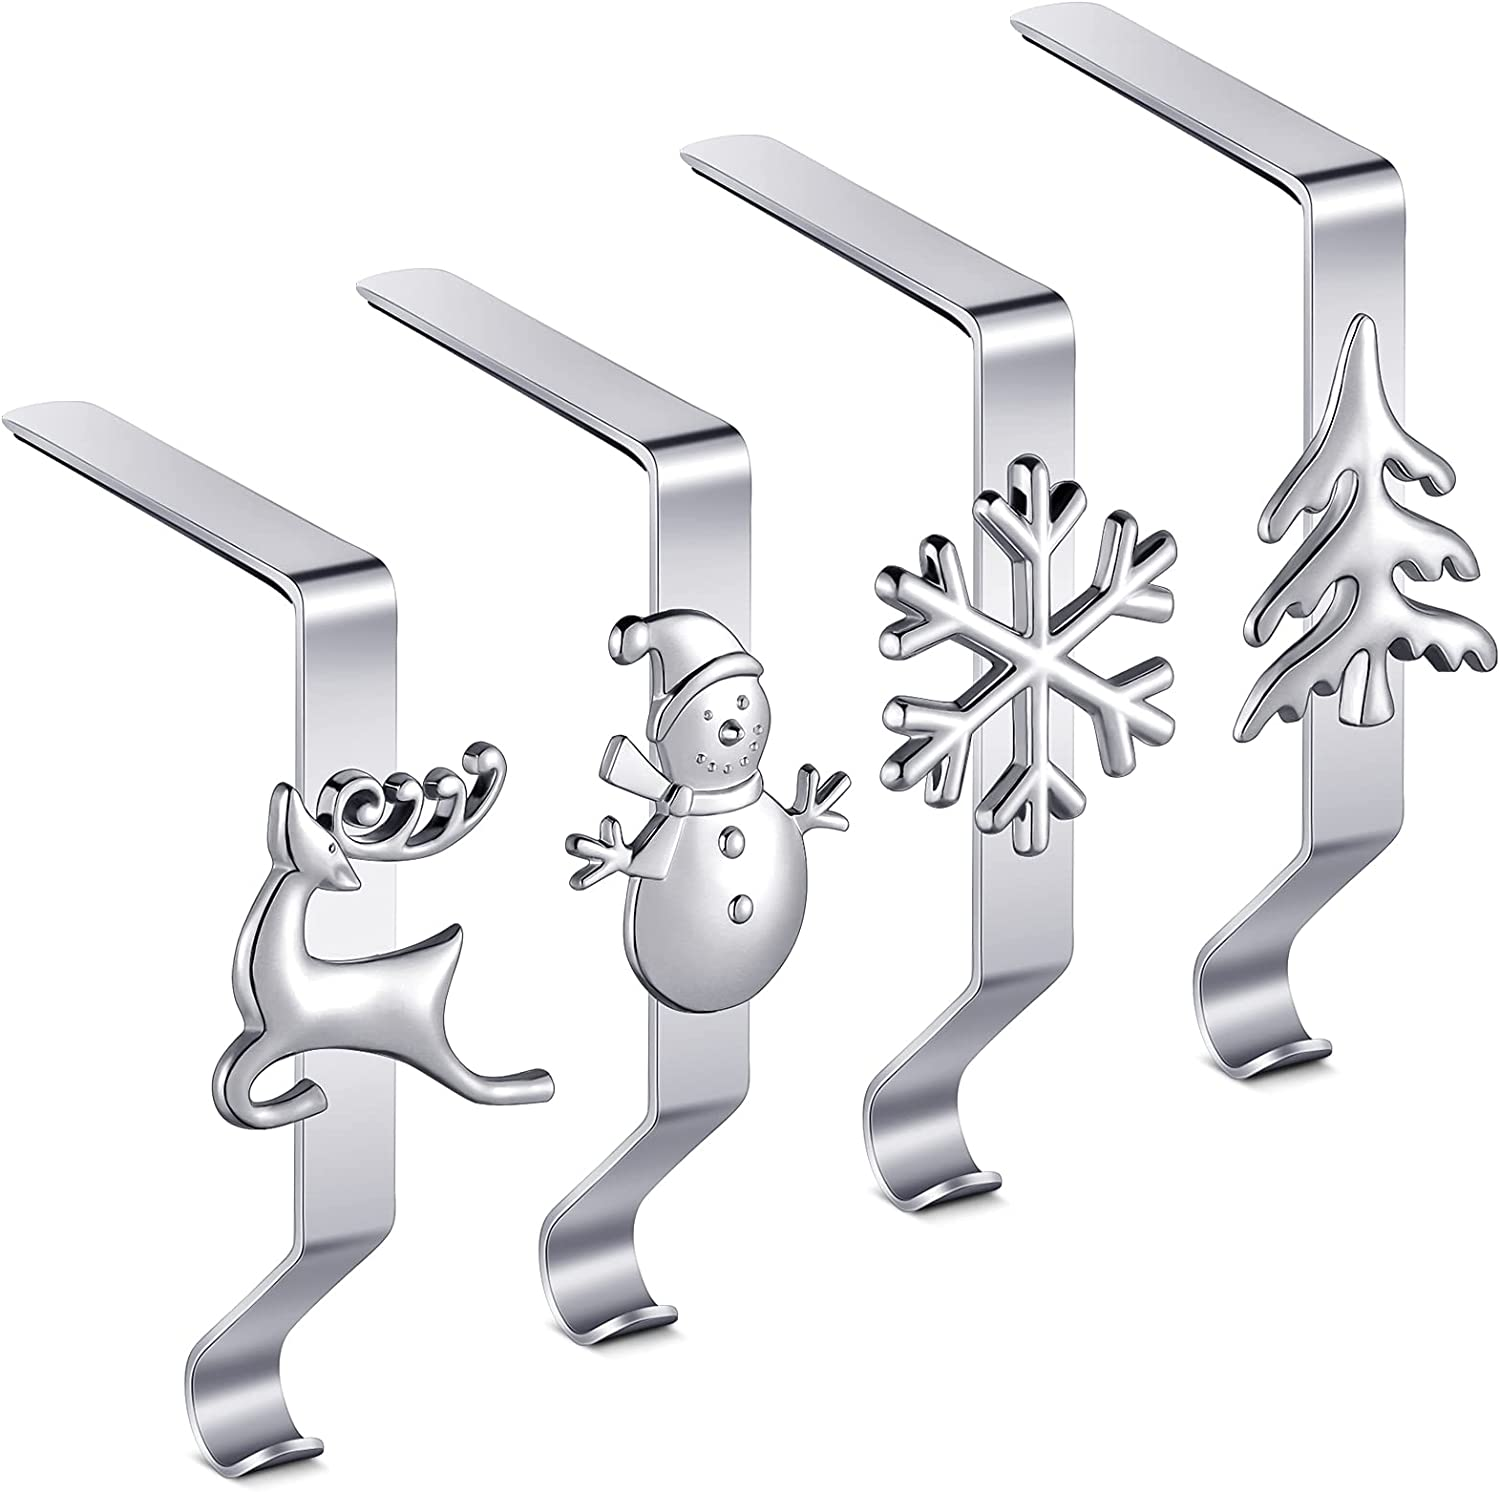 Ripeng 4 Los Angeles Mall Pieces Christmas Stocking Hooks Clip Mantel Wholesale Ho